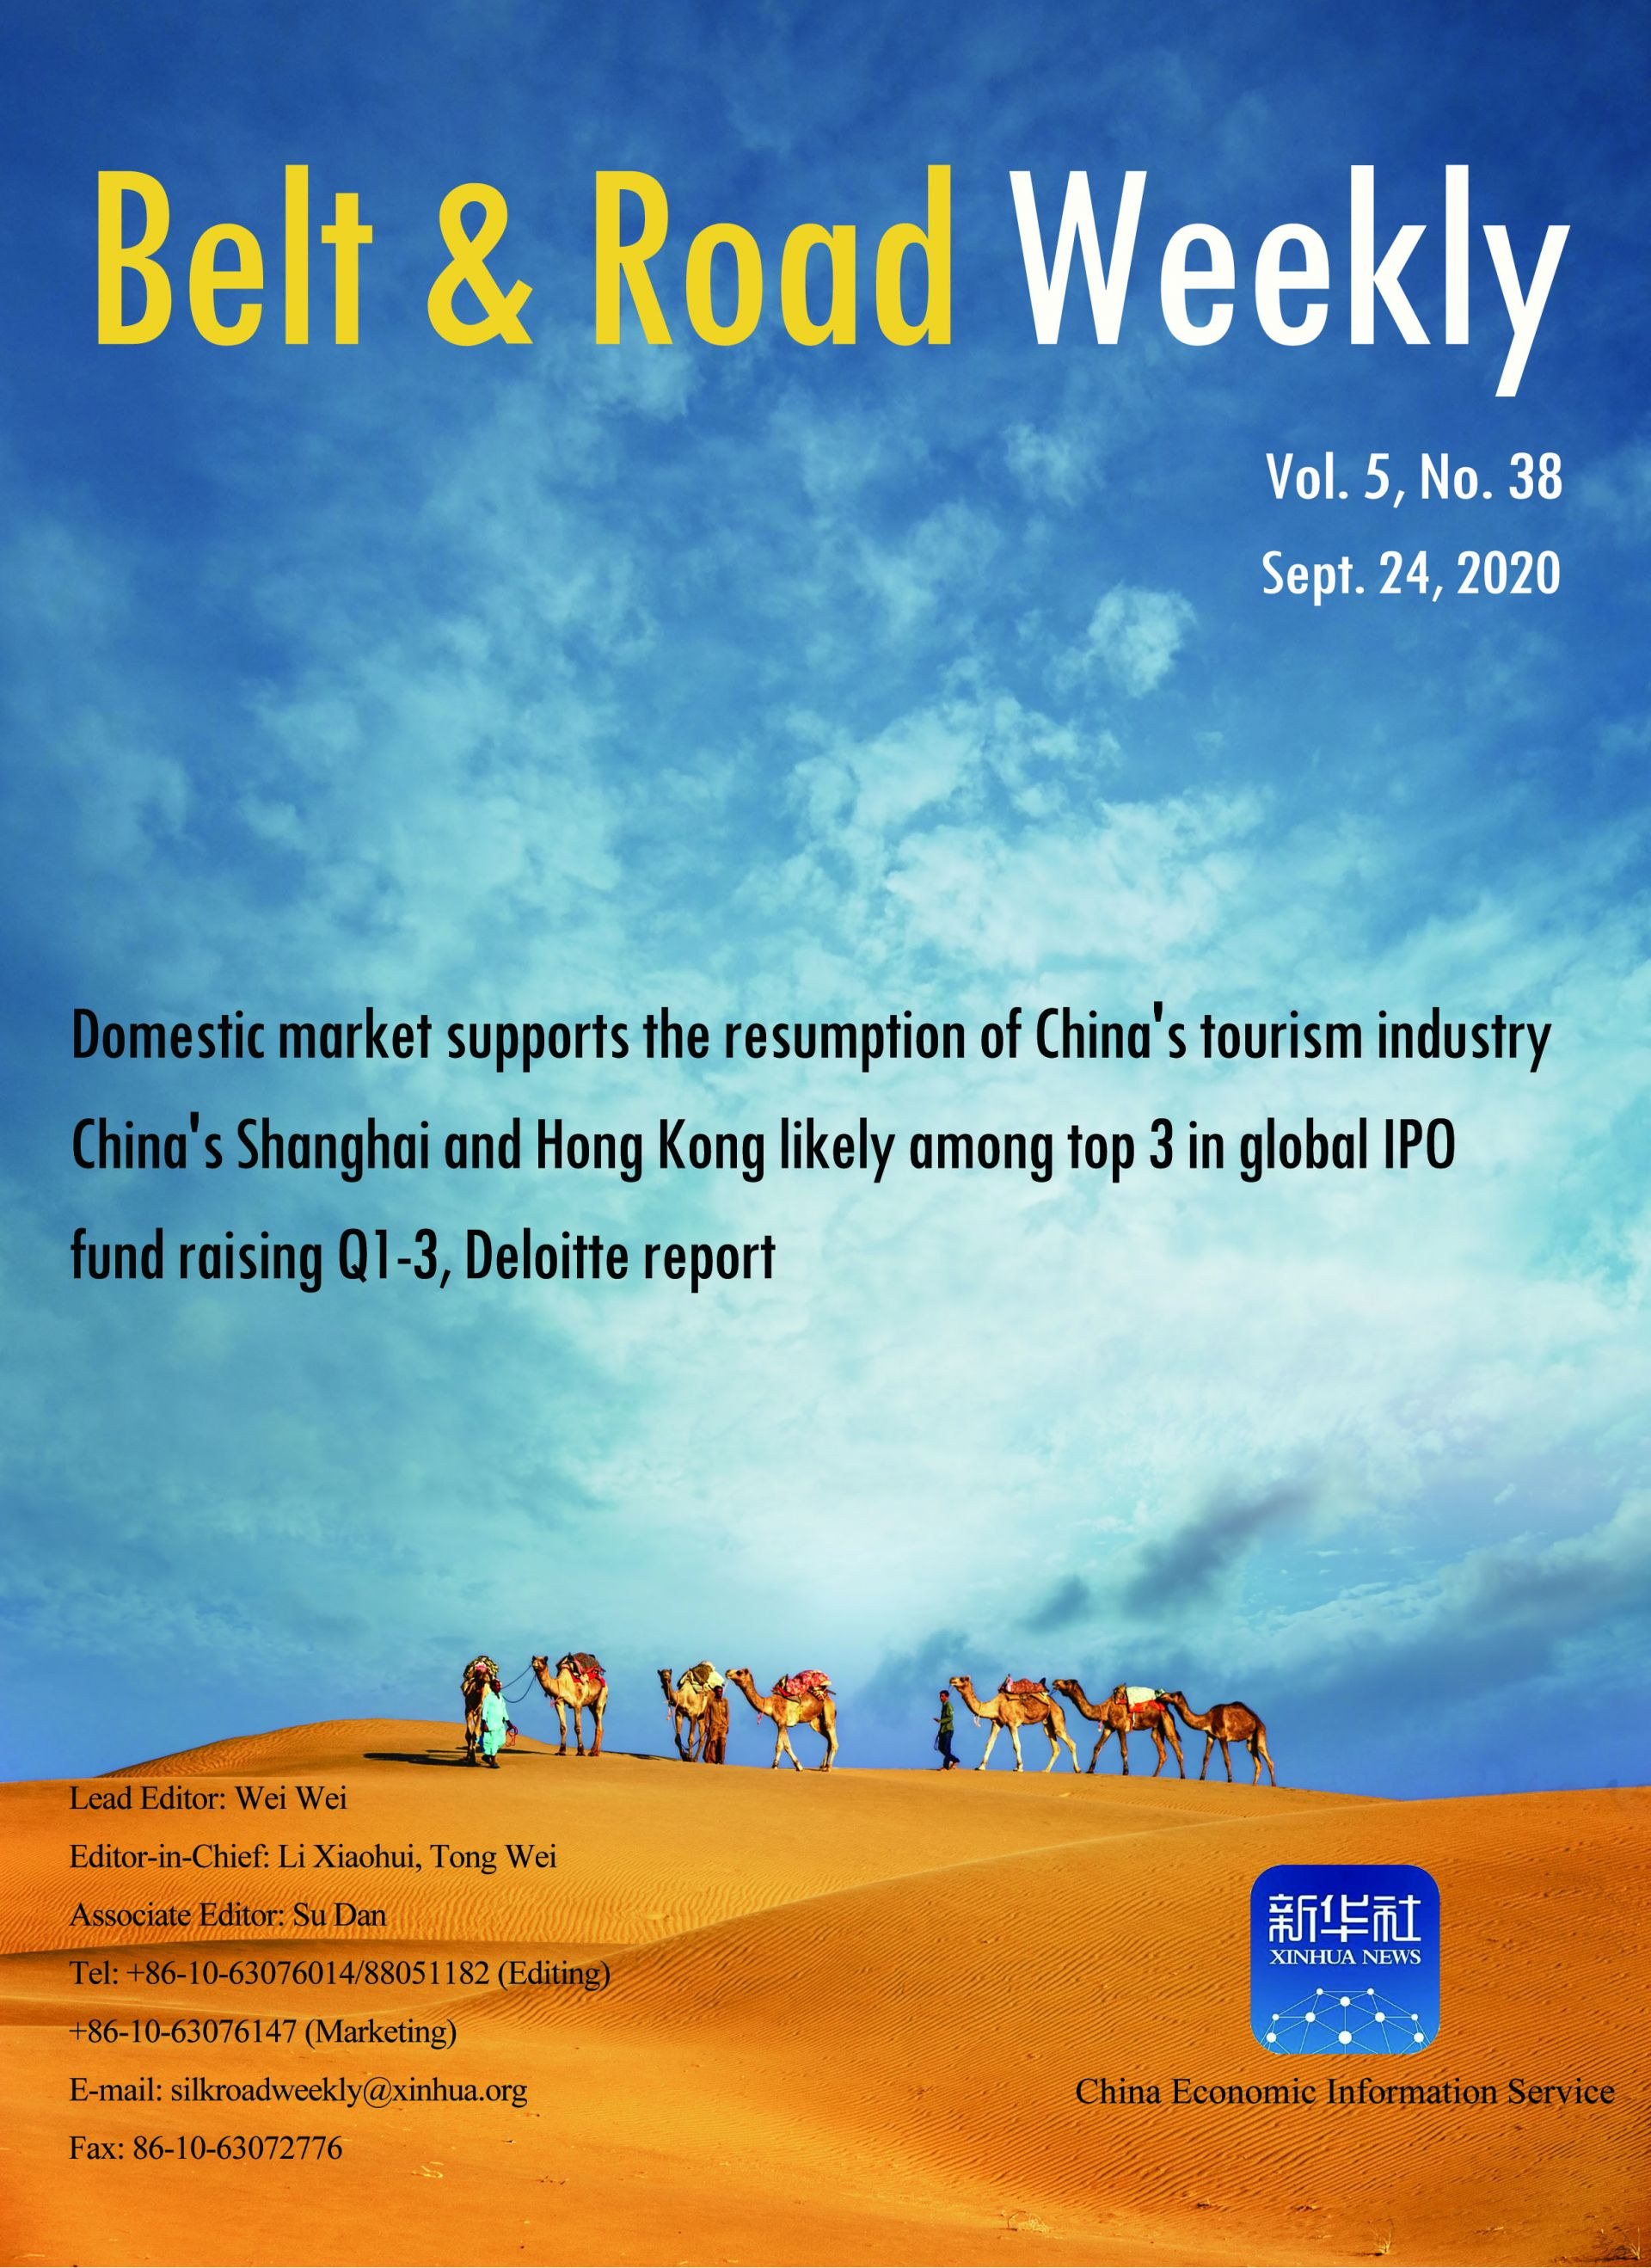 Belt and Road Weekly Vol. 5, No. 38